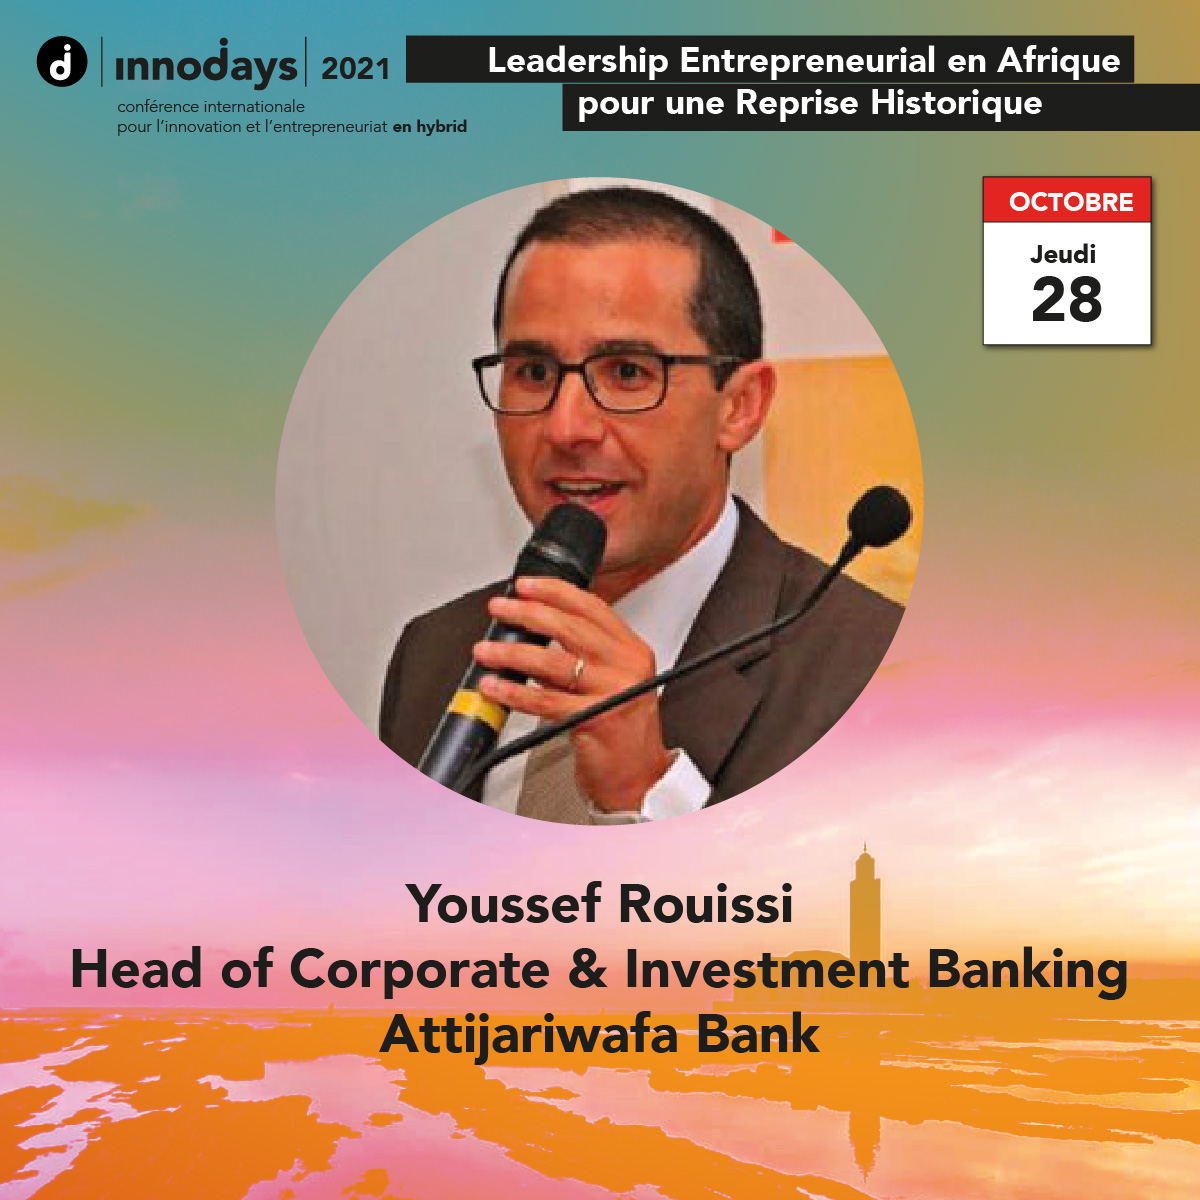 Youssef Rouissi - Head of Corporate & Investment Banking - Attijariwafa Bank